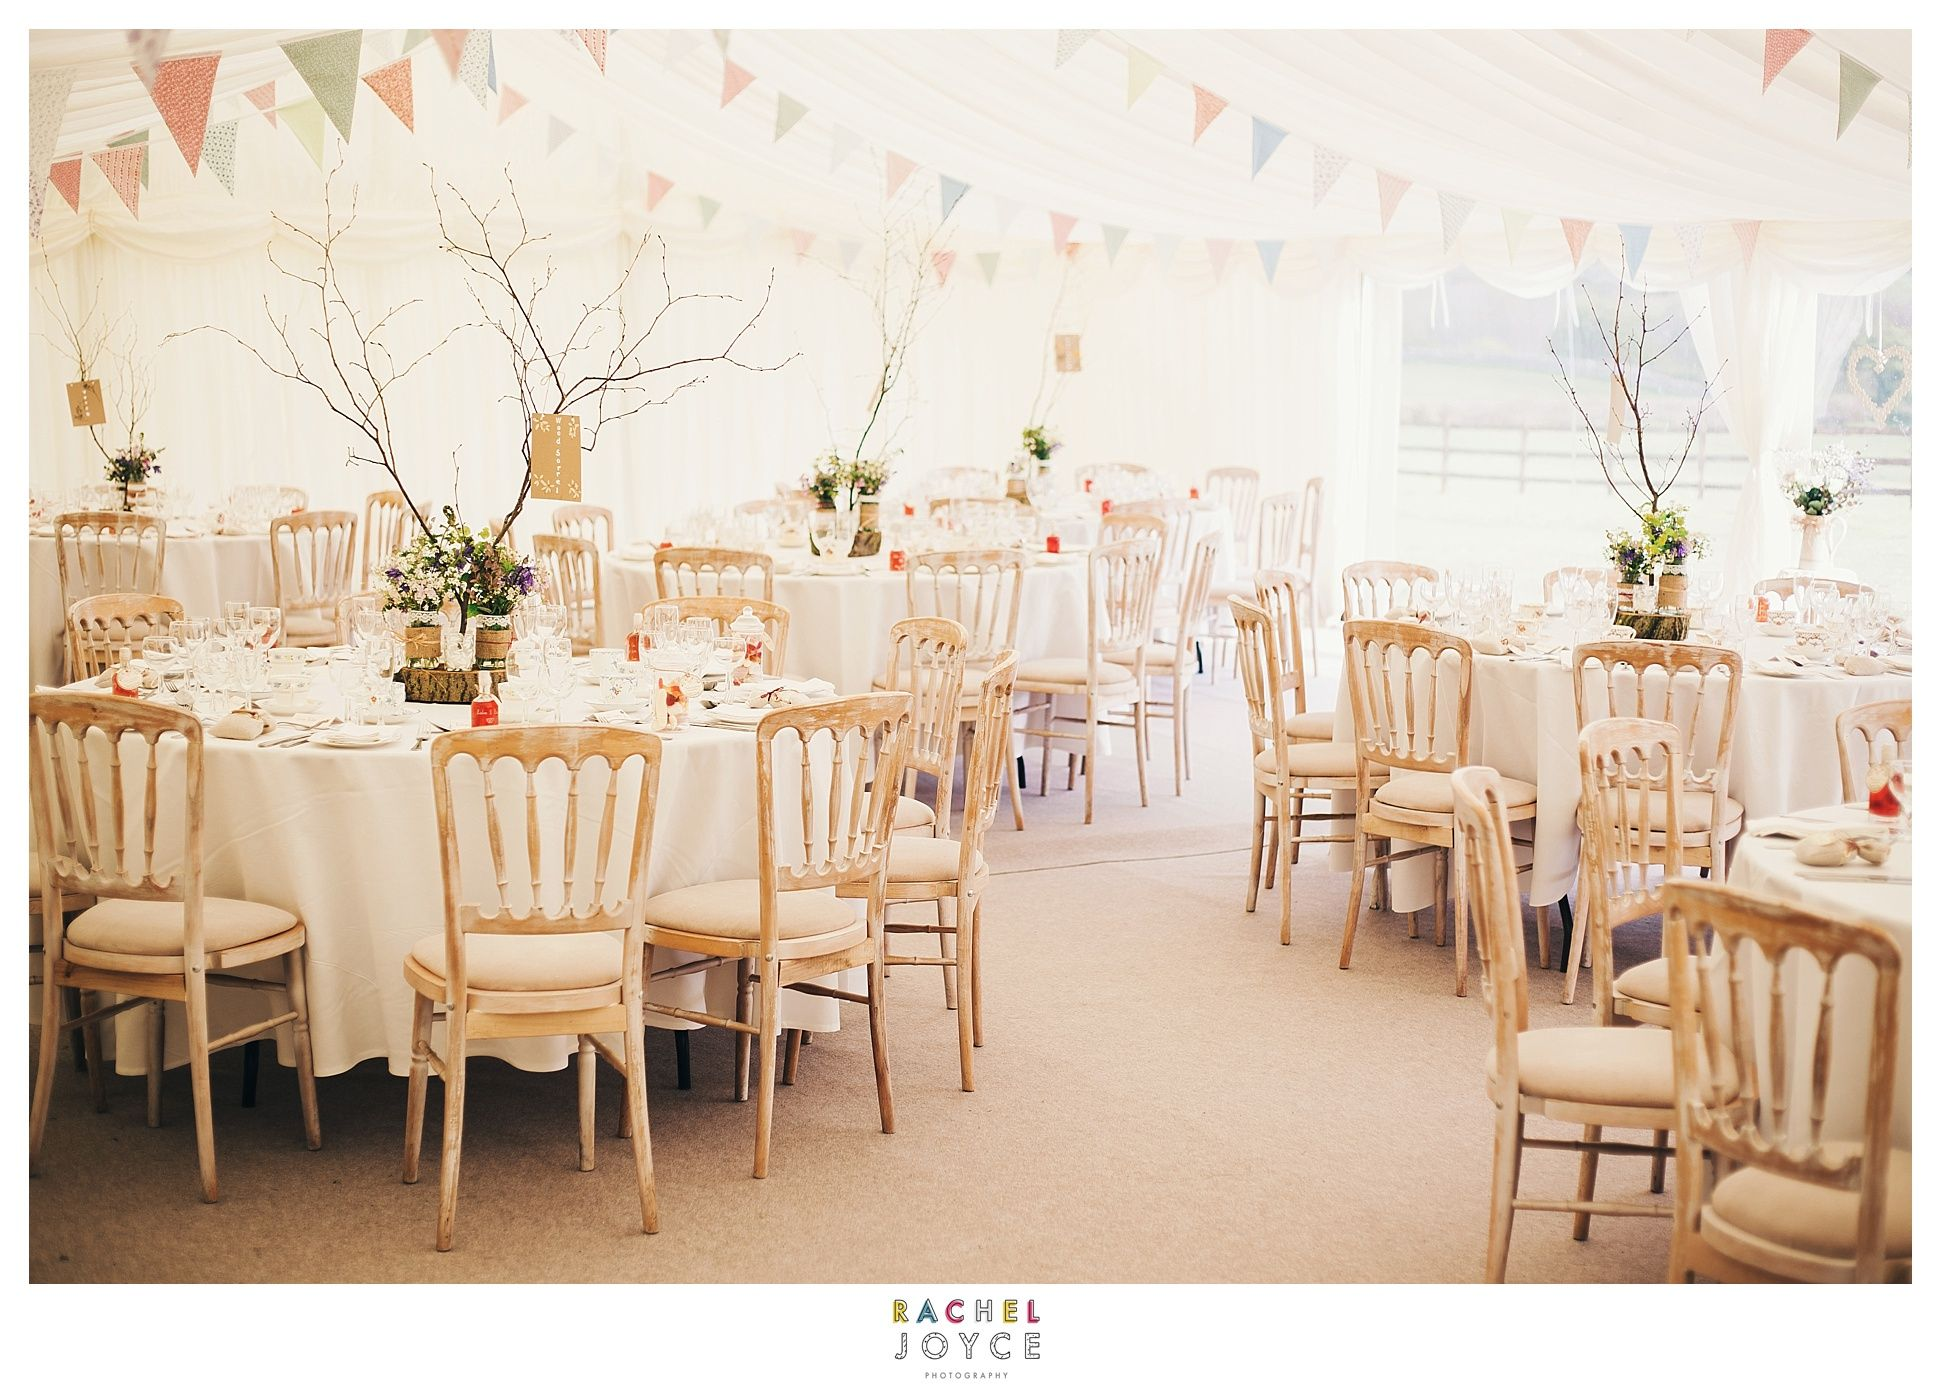 Table layout. Wedding tables. Vintage themed wedding. Bunting for a wedding. Wedding inspirations. www.racheljoycephotography.co.uk